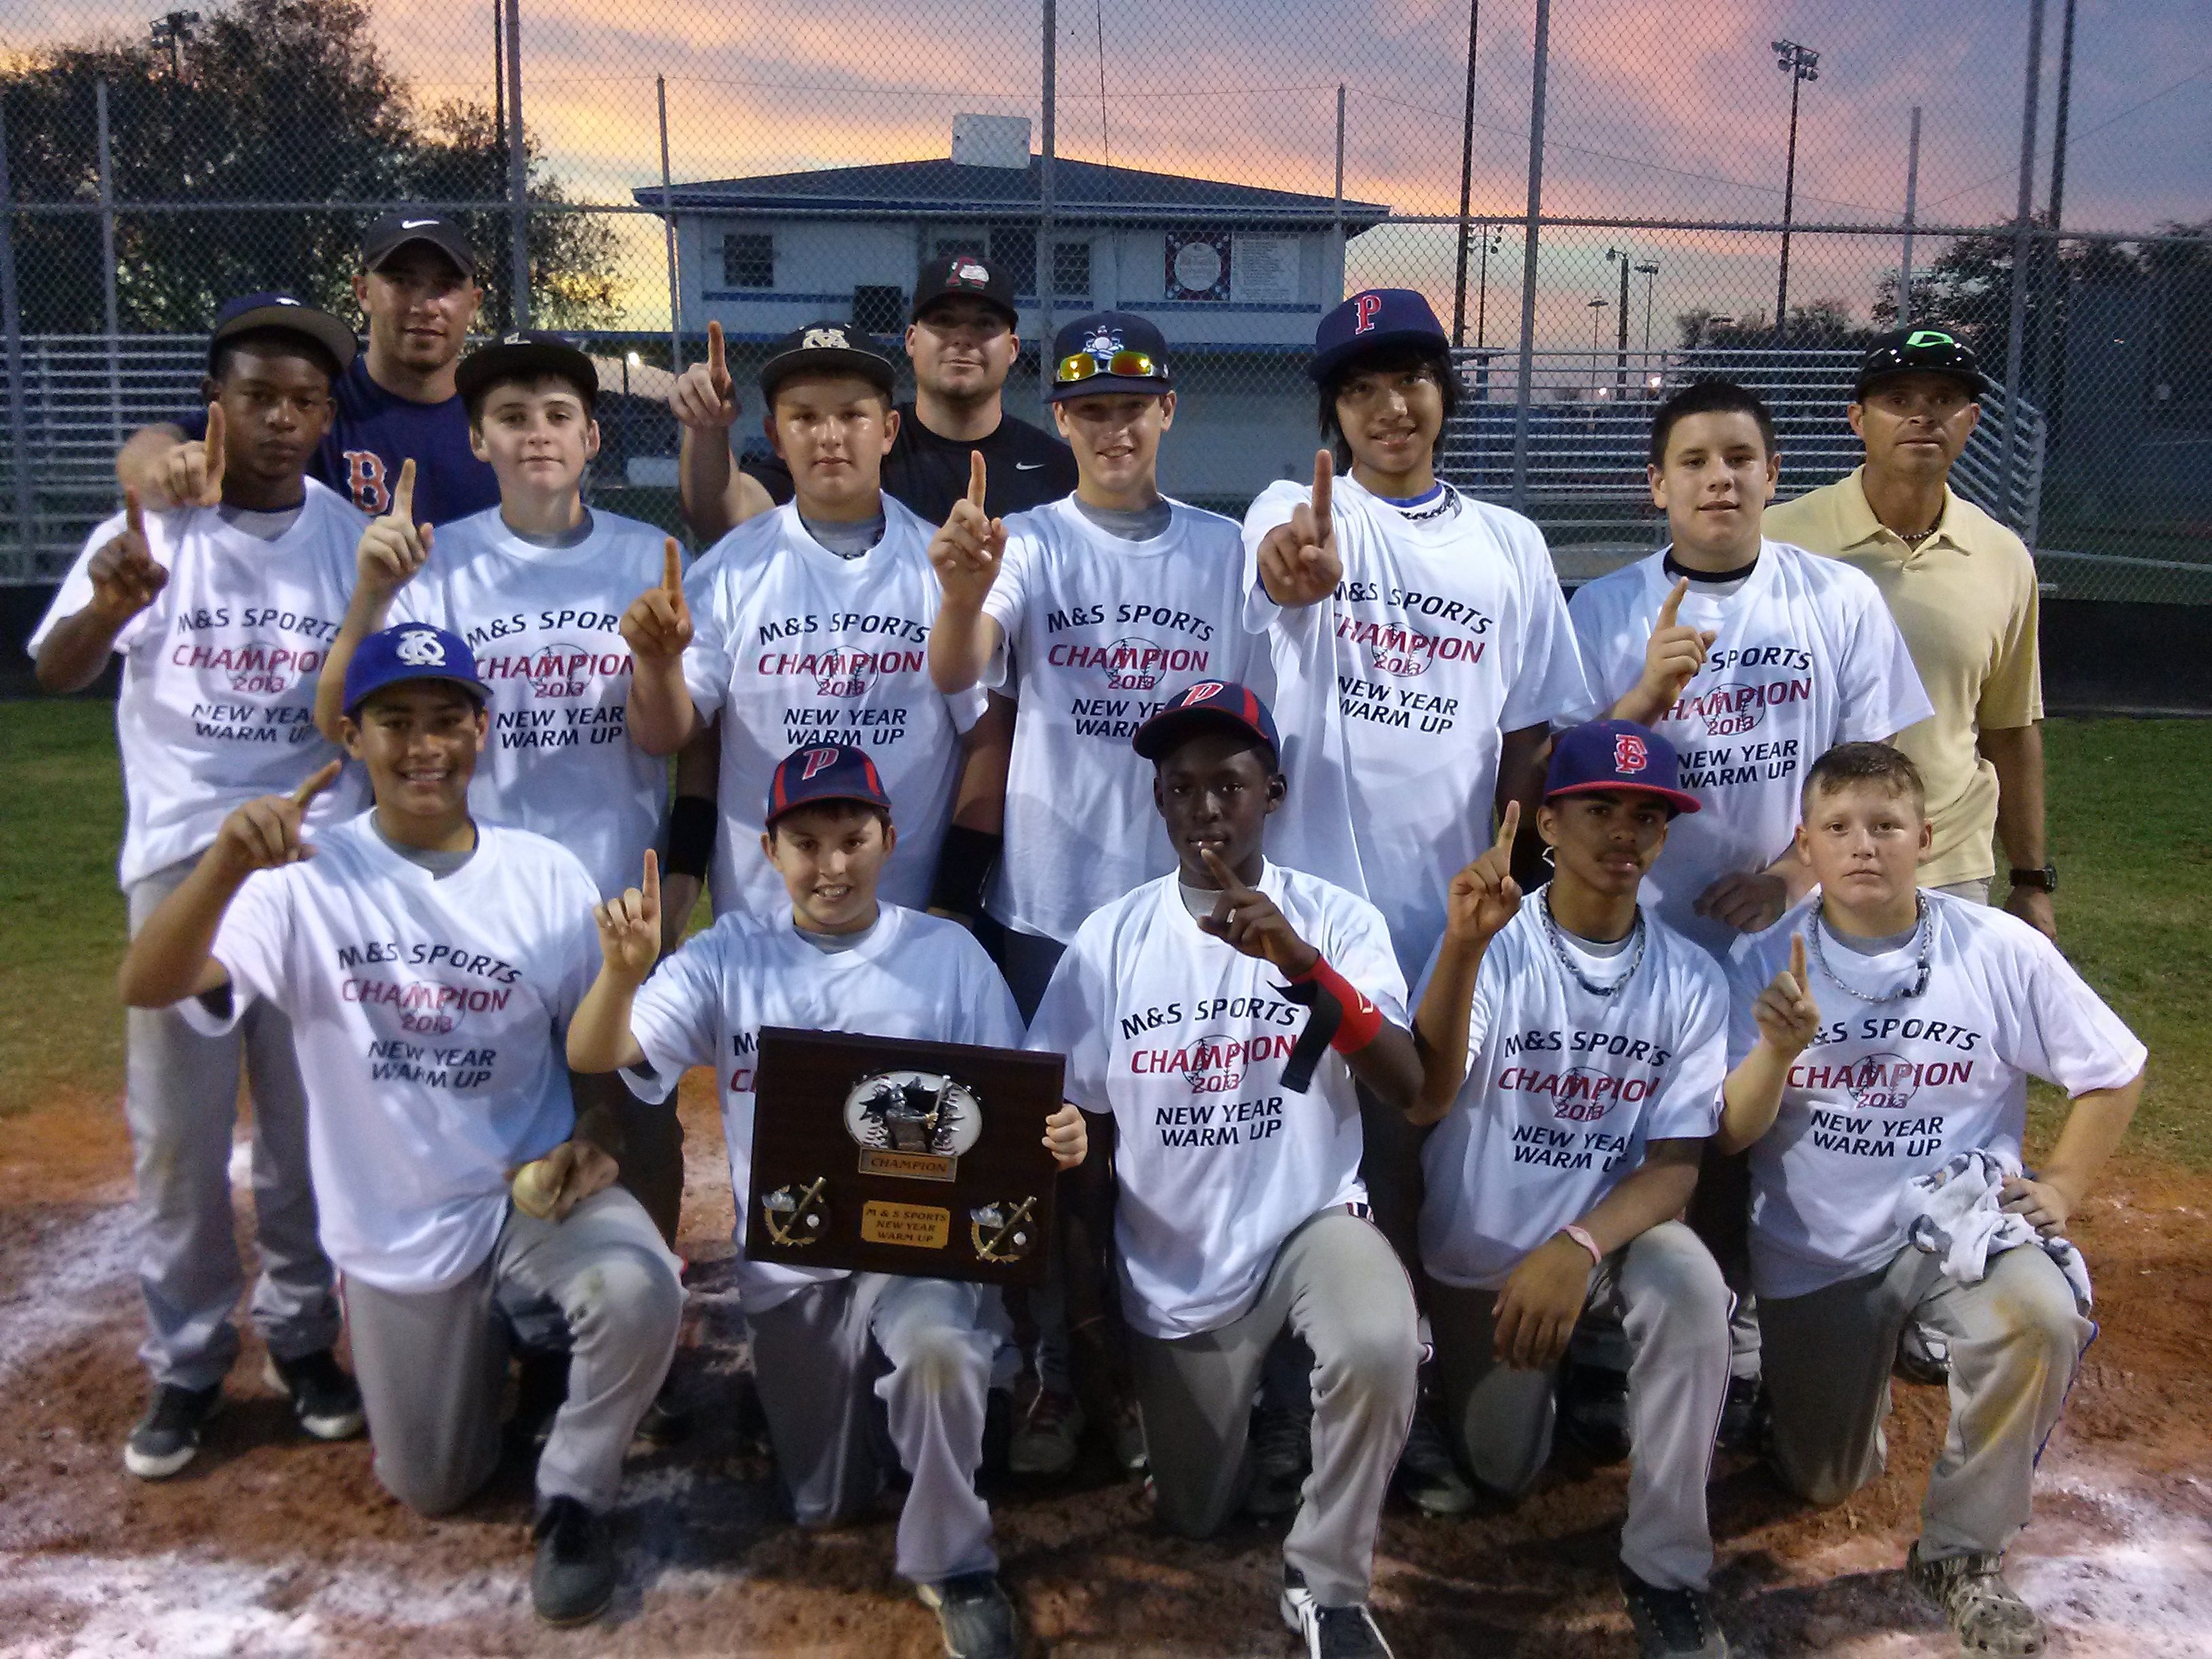 ... 14U's victory photo -GSA Spring Fling in Tampa, FL -January 23, 2013